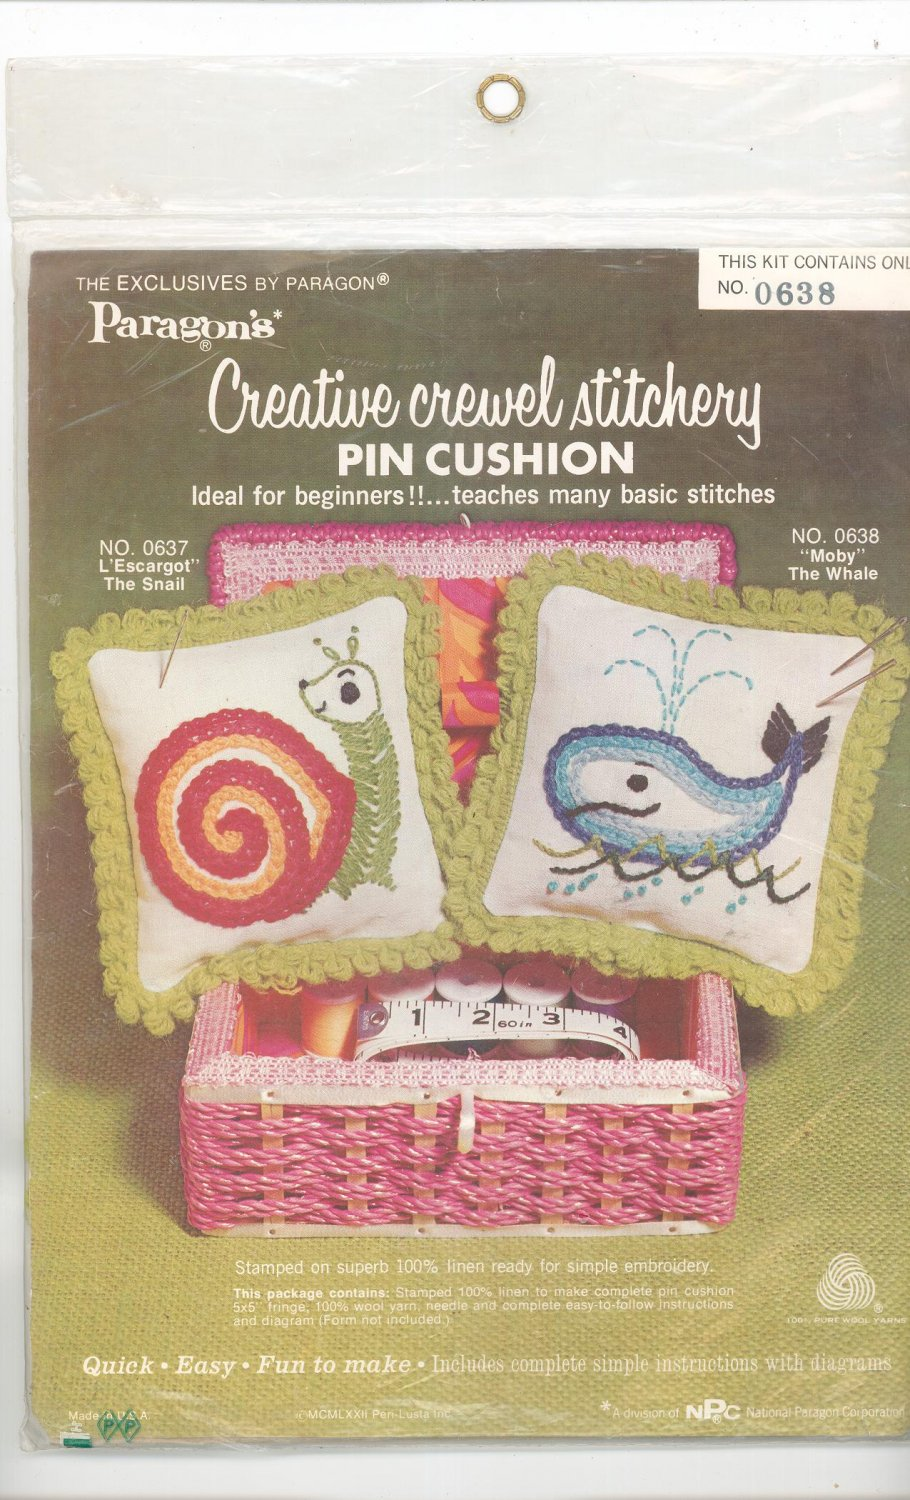 """Vintage Paragon """"Moby"""" The Whale Creative Crewel Stitchery Pin Cushion # 0638"""